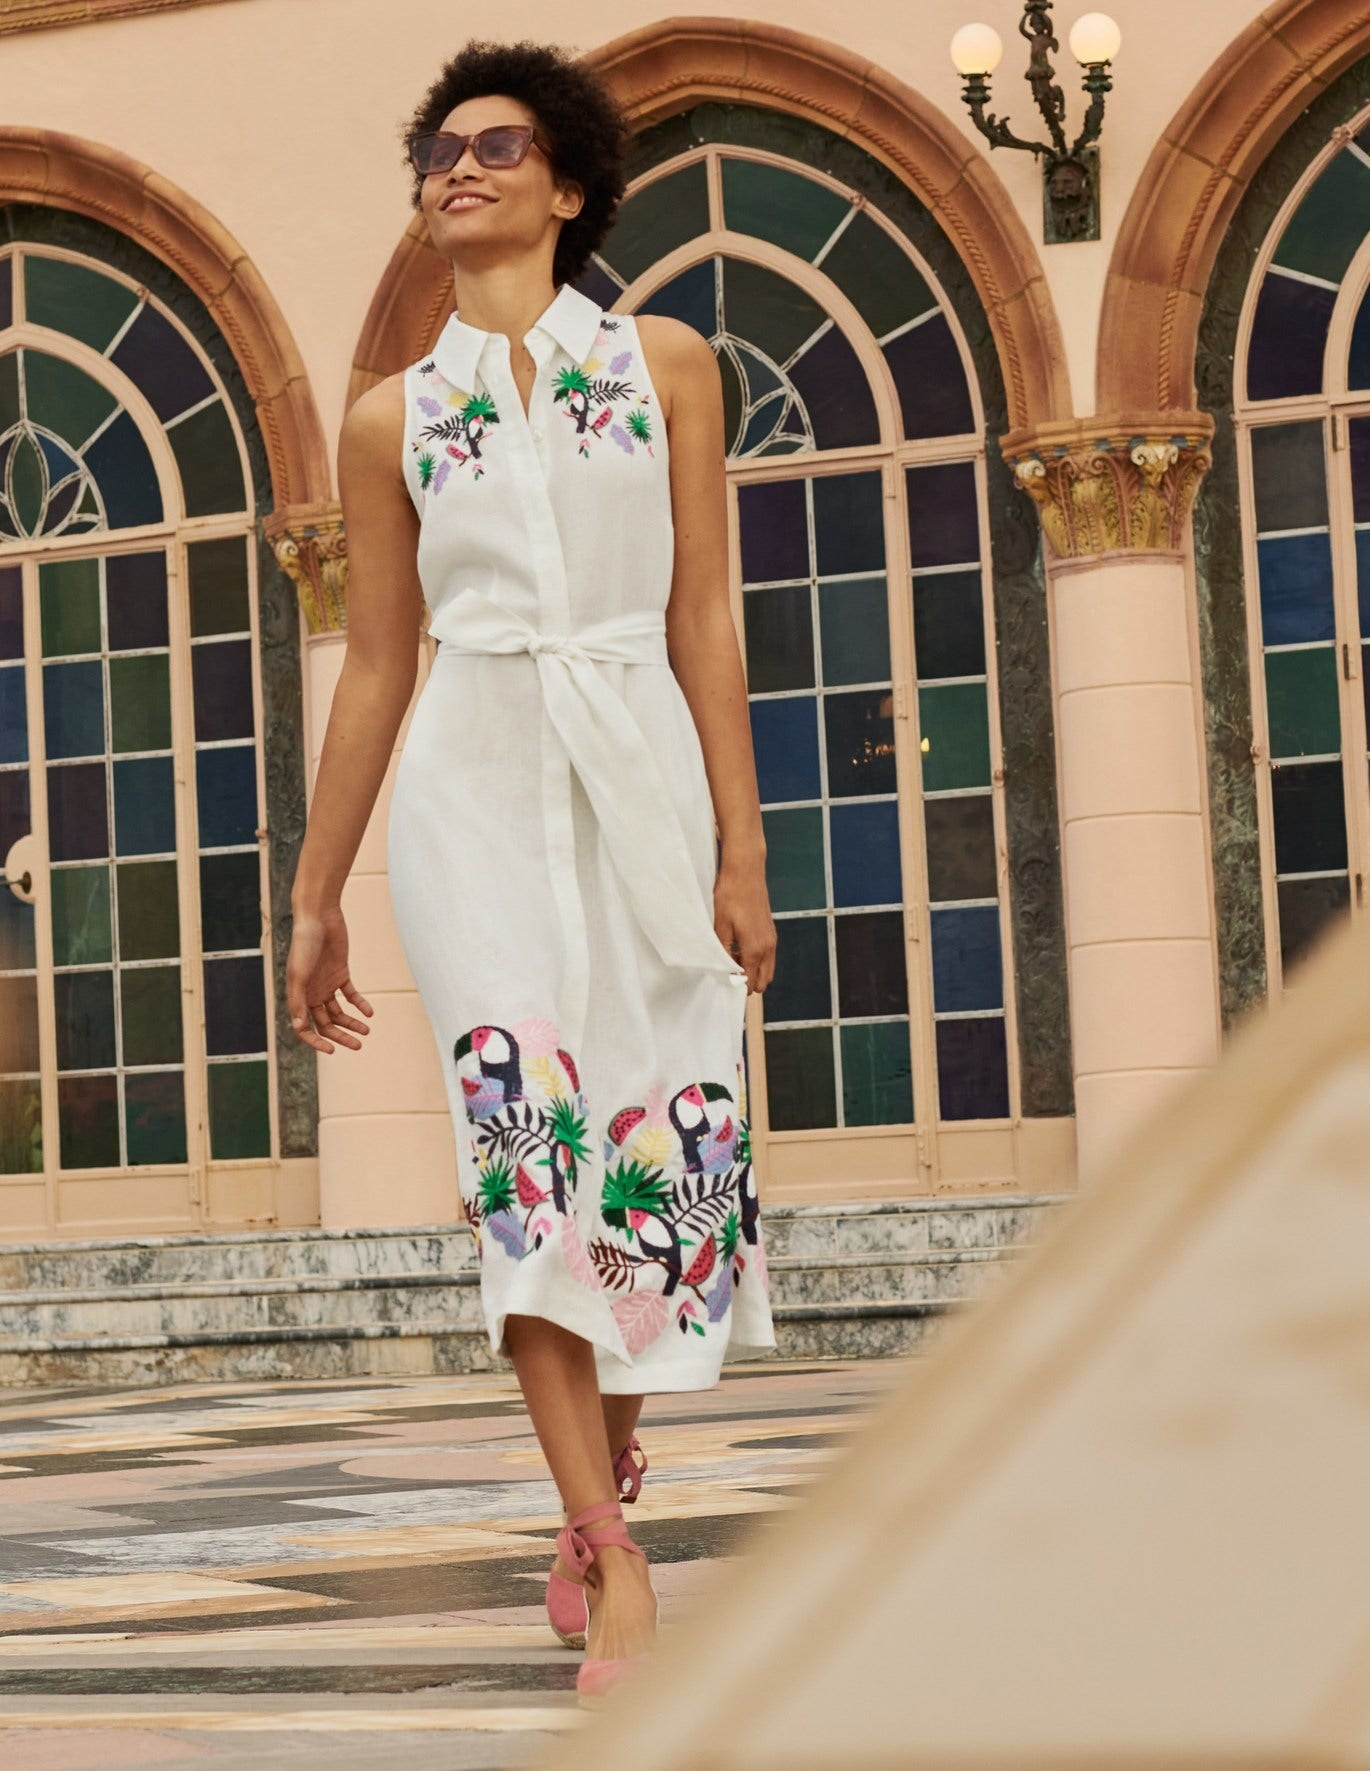 white collared shirt with tropical pattern on bottom of skirt and on the shoulders